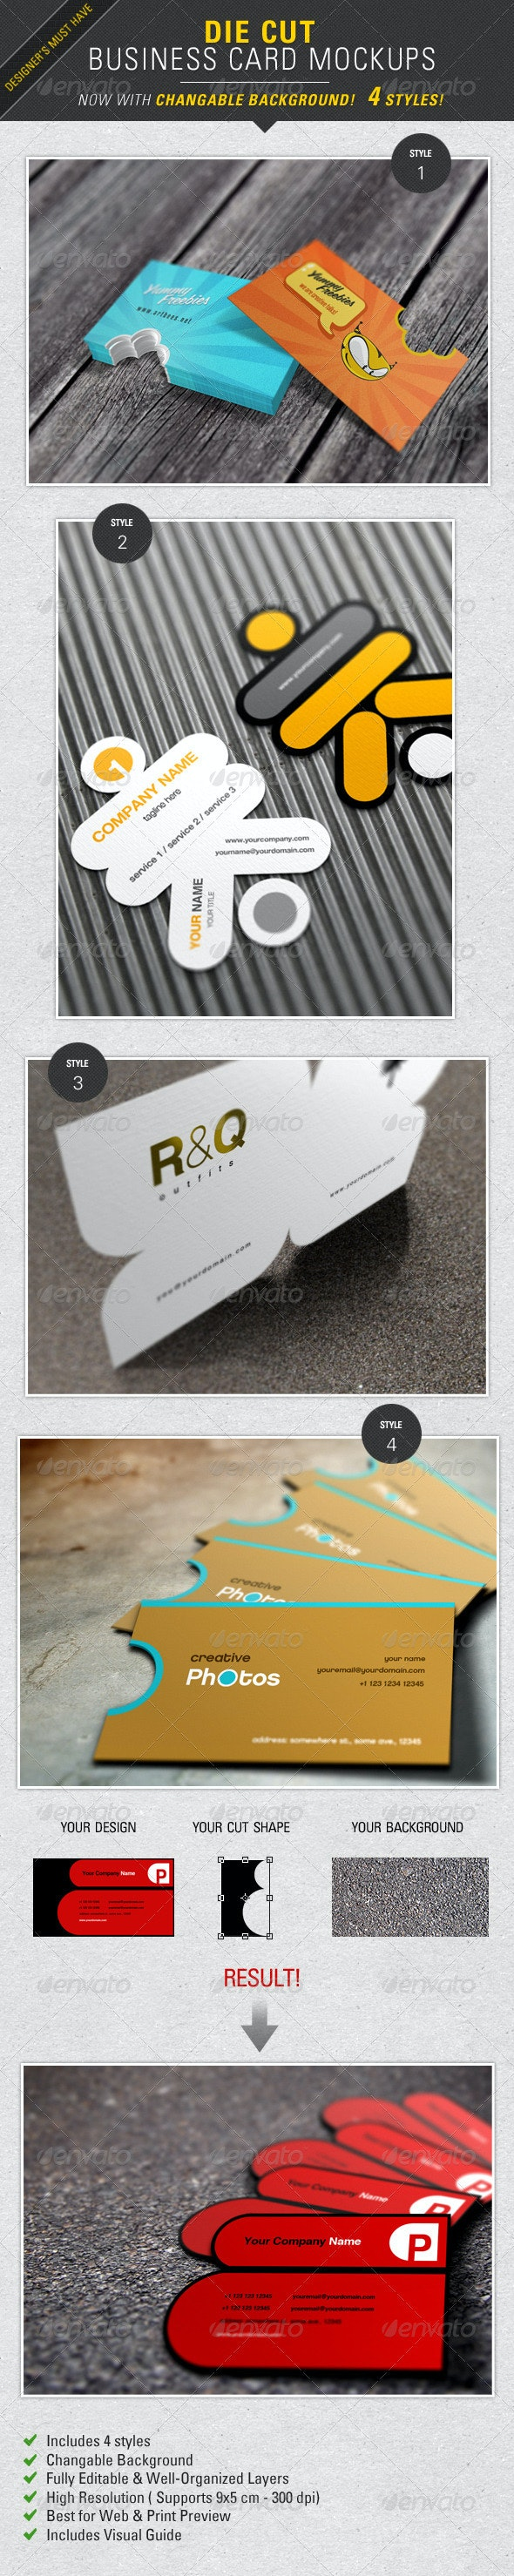 Die Cut Business Card Mockup  - Business Cards Print